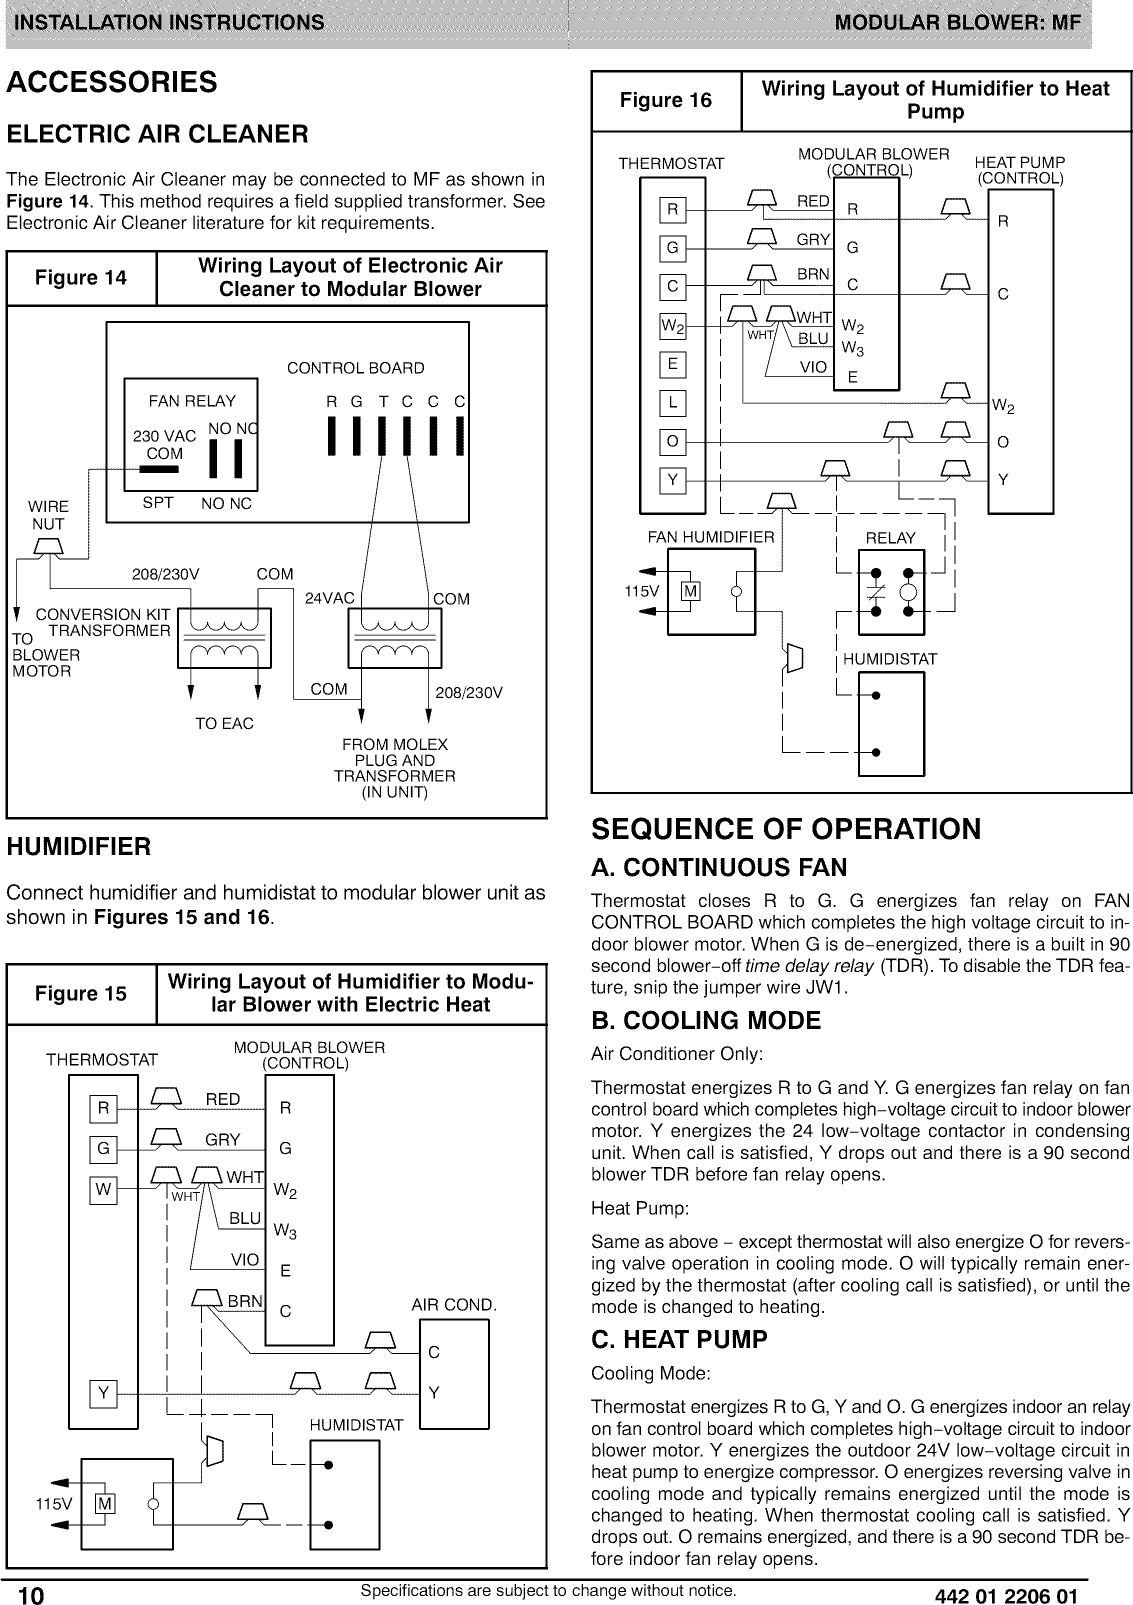 intercranial pressure diagram, lg diagram, art diagram, ic diagram, rca diagram, hplc diagram, isp diagram, nmr diagram, ics diagram, gc diagram, control board wiring diagram, pcr diagram, xrd diagram, plasma diagram, ftir diagram, sem diagram, goodman diagram, tcp diagram, chromatography diagram, whirlpool diagram, on icp wiring diagrams